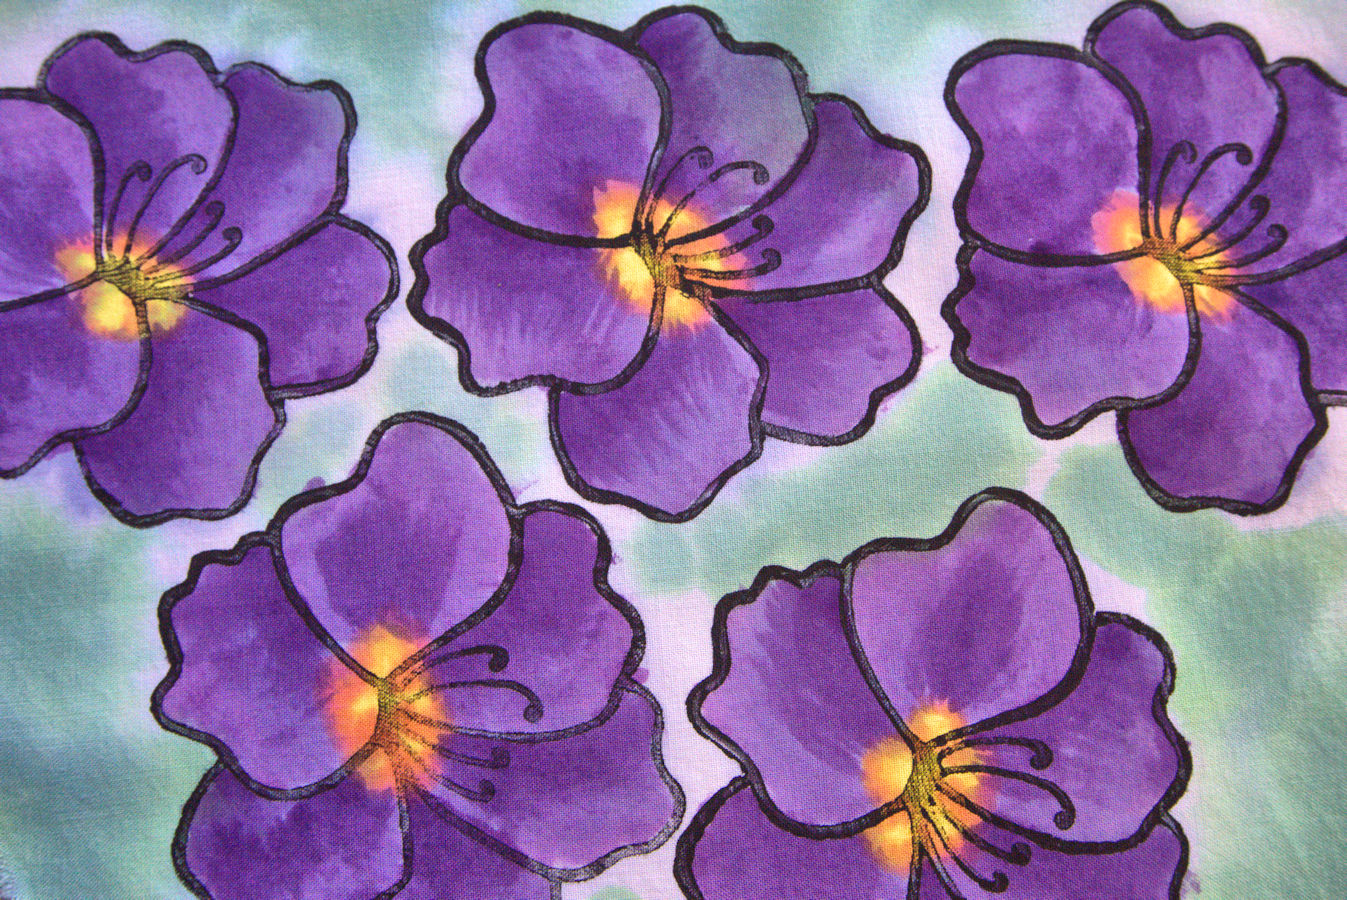 Purple painted flowers on fabric